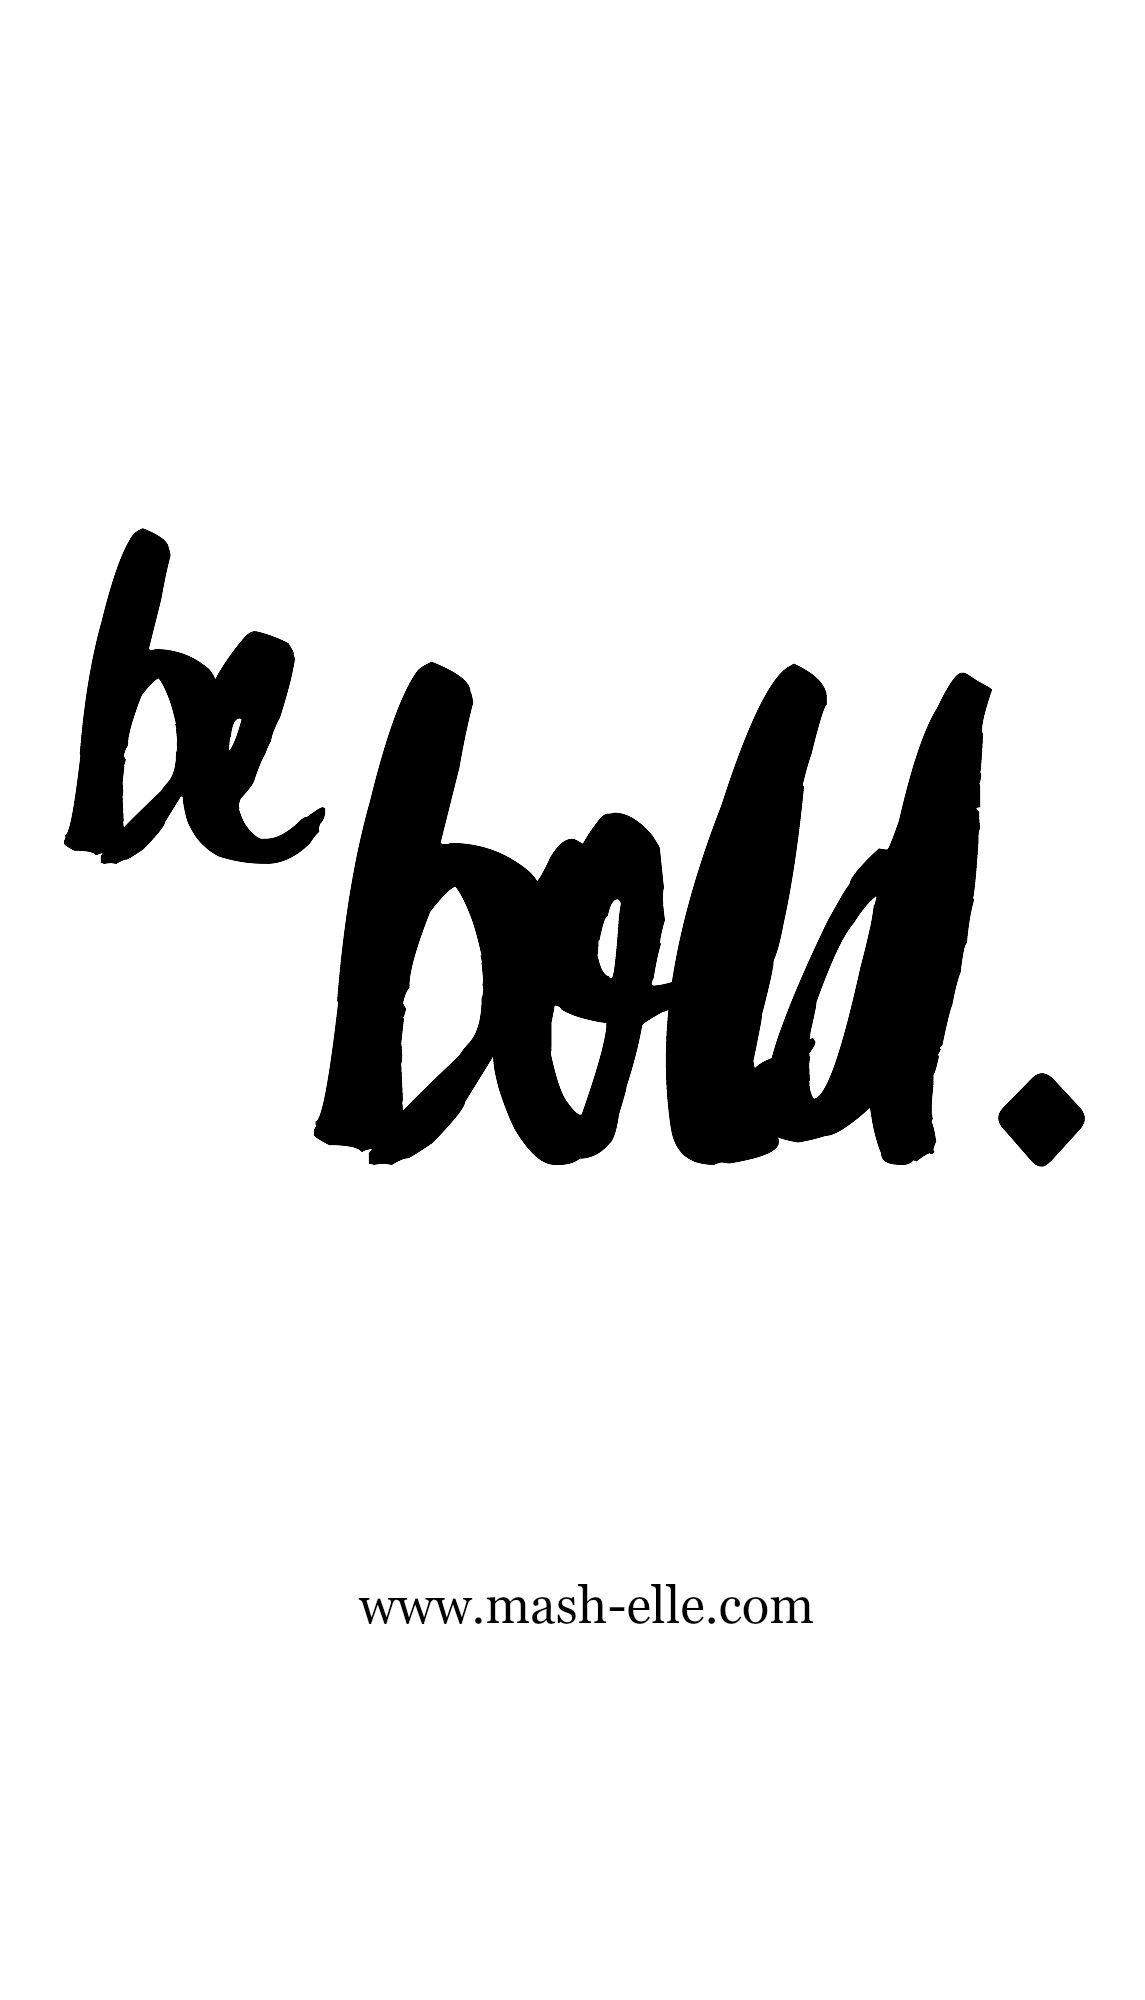 be bold. be you. be fabulous.